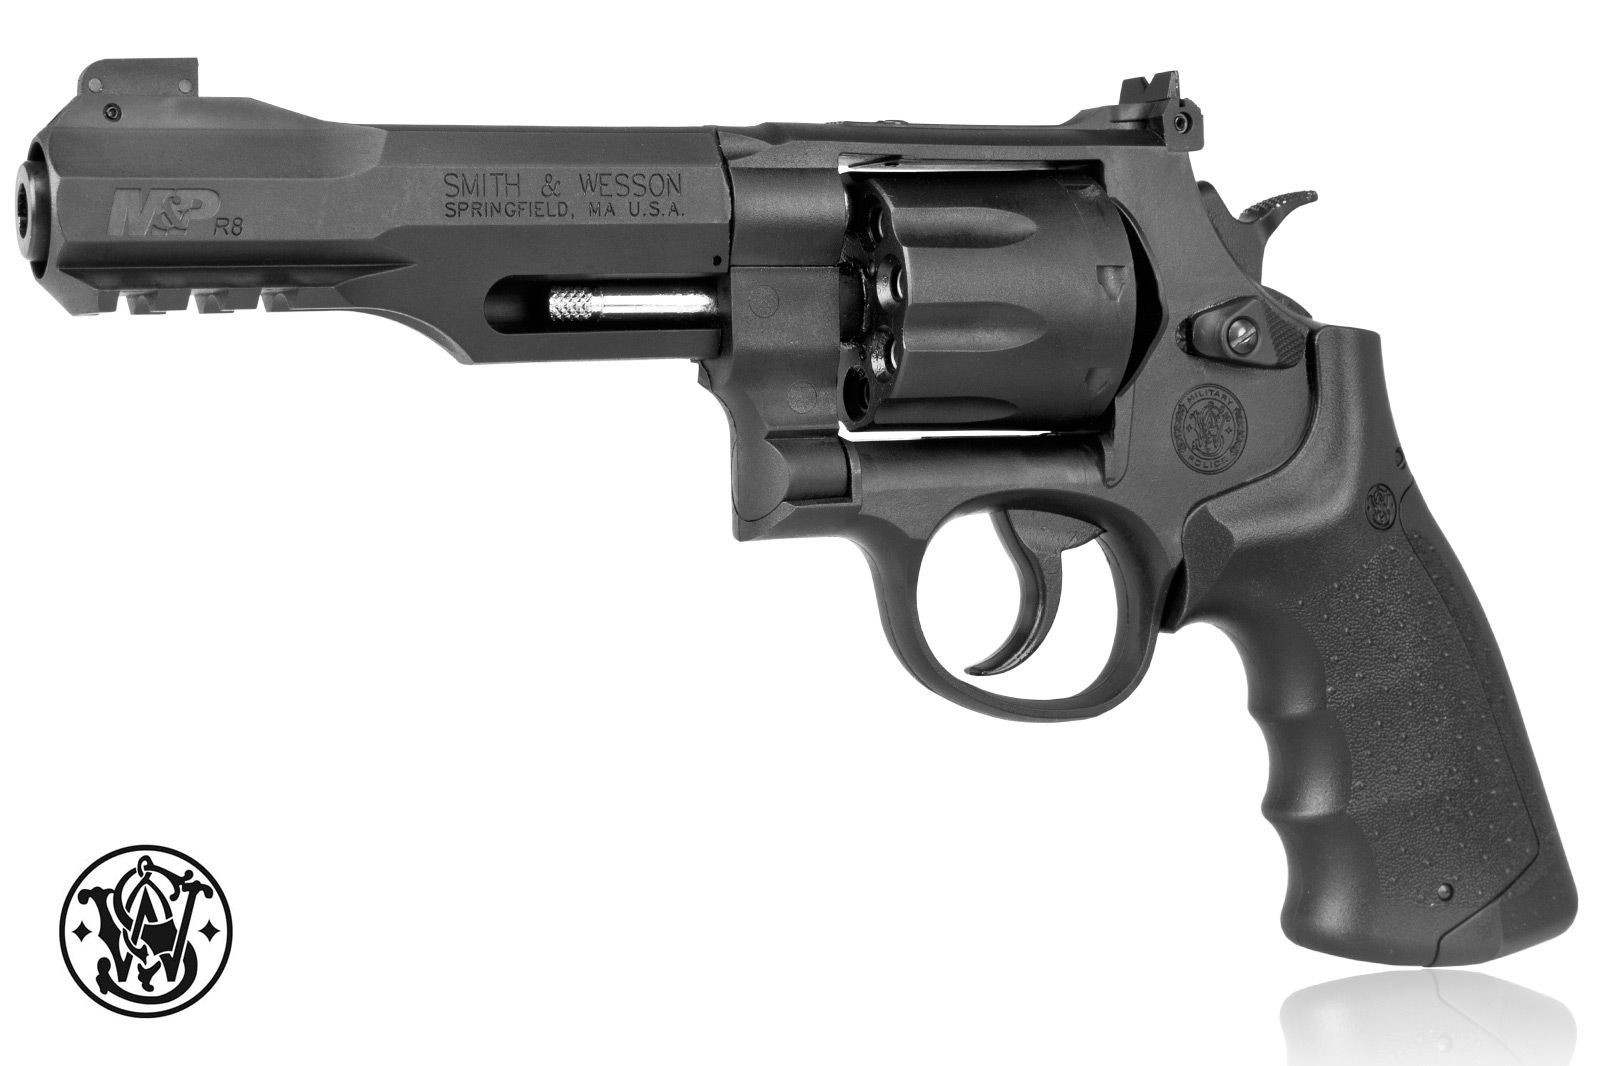 Wiatrówka rewolwer Smith&Wesson M&P R8 (5.8163) kal.4,46mm